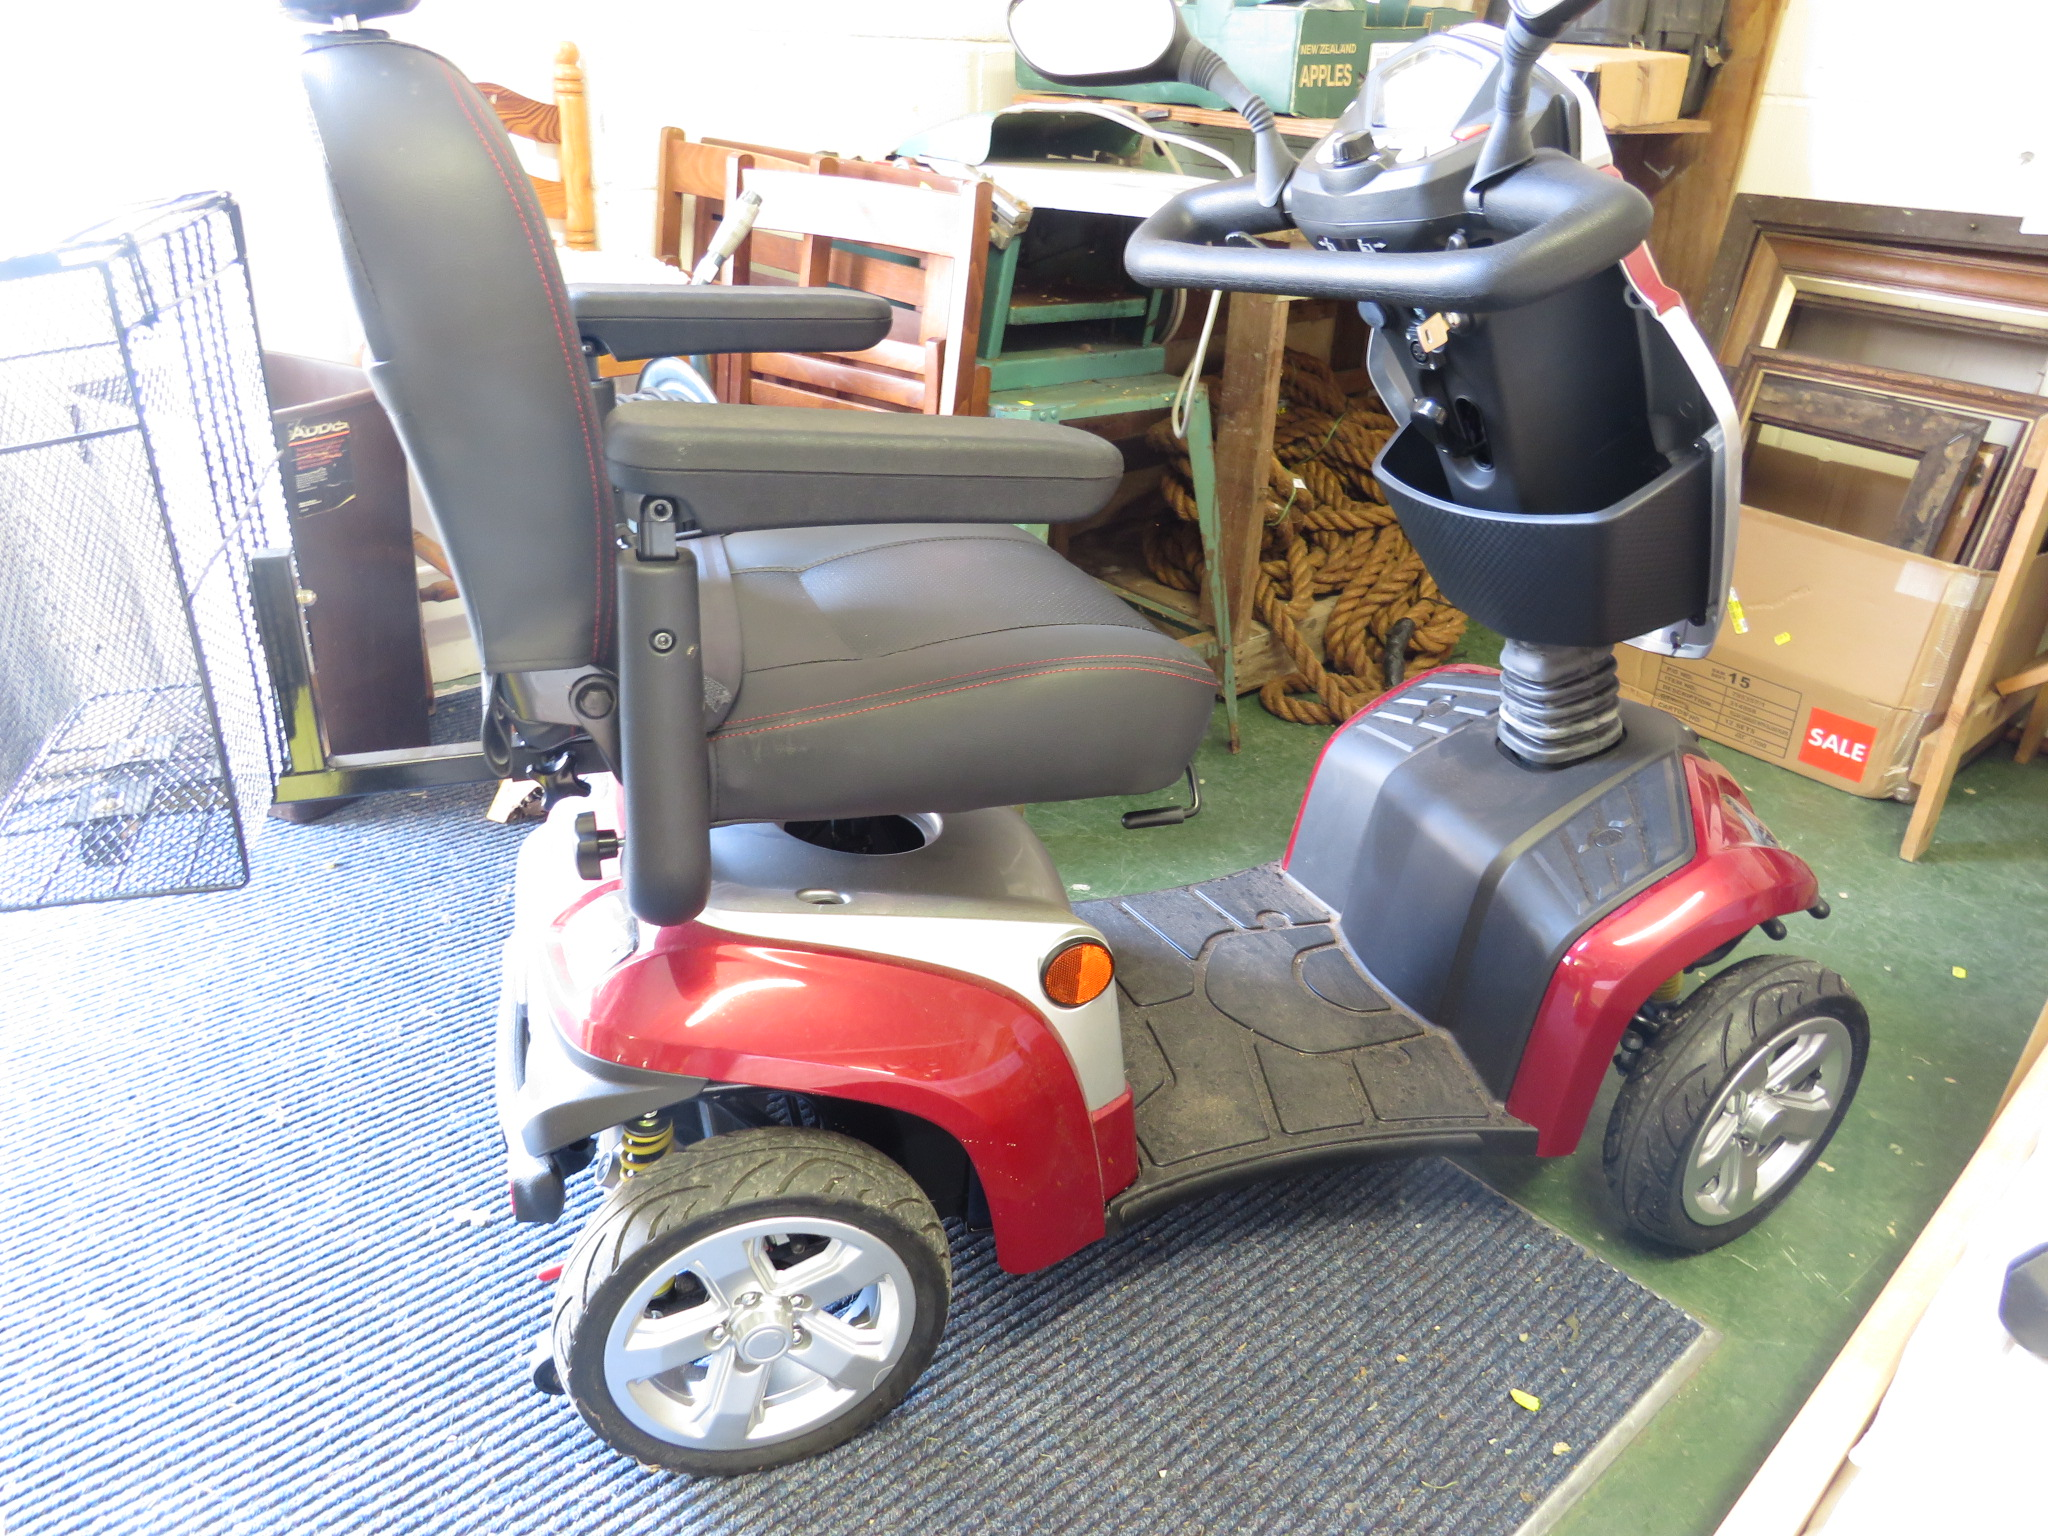 Lot 53 - KYMCO AGILITY MOBILITY SCOOTER WITH SHOPPING BASKET TO REAR (CHARGER AND KEY?? IN OFFICE)